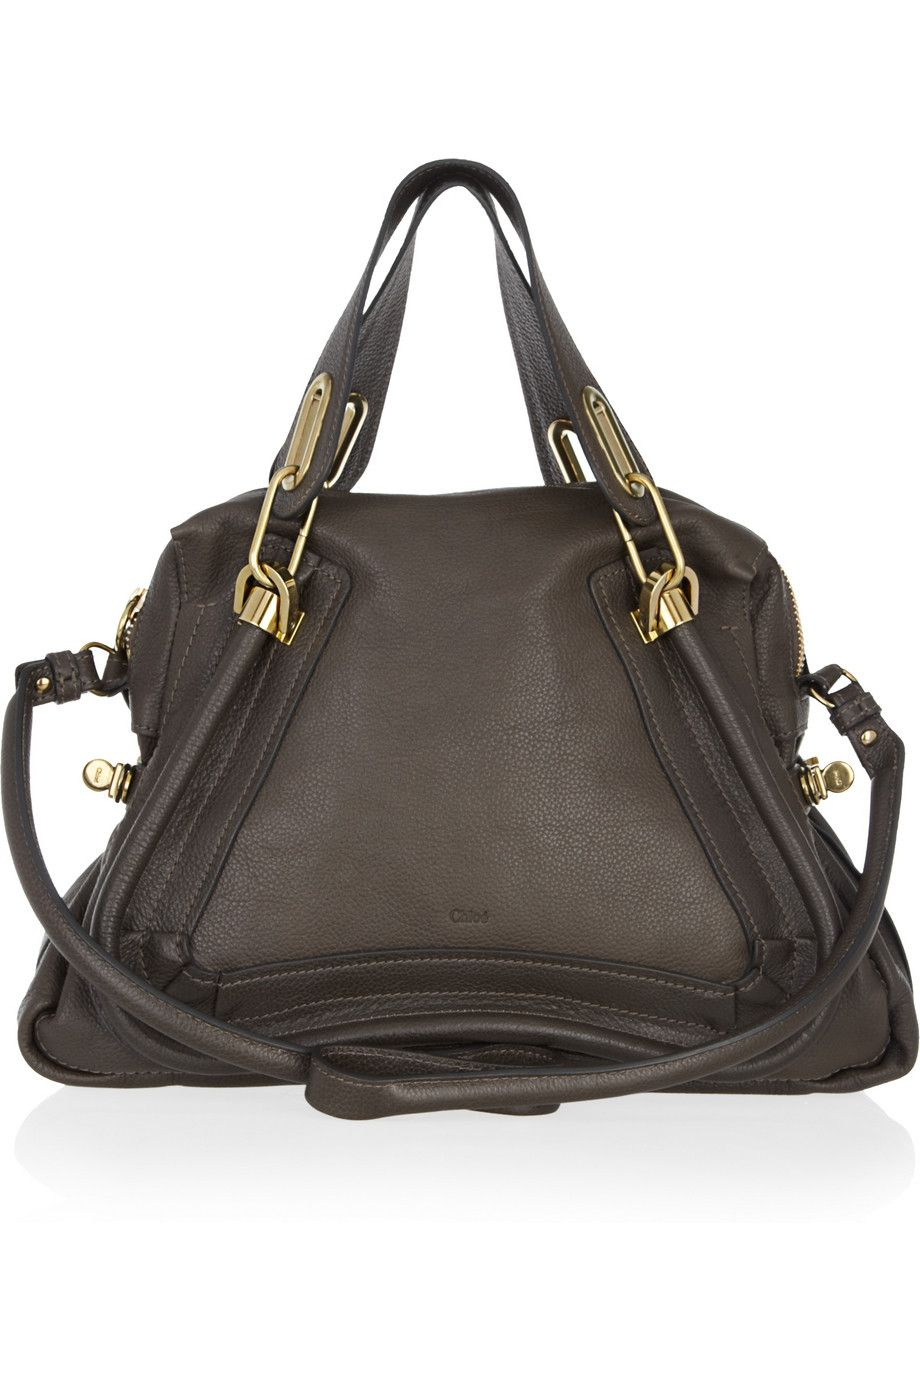 ChloeParaty Medium leather bag